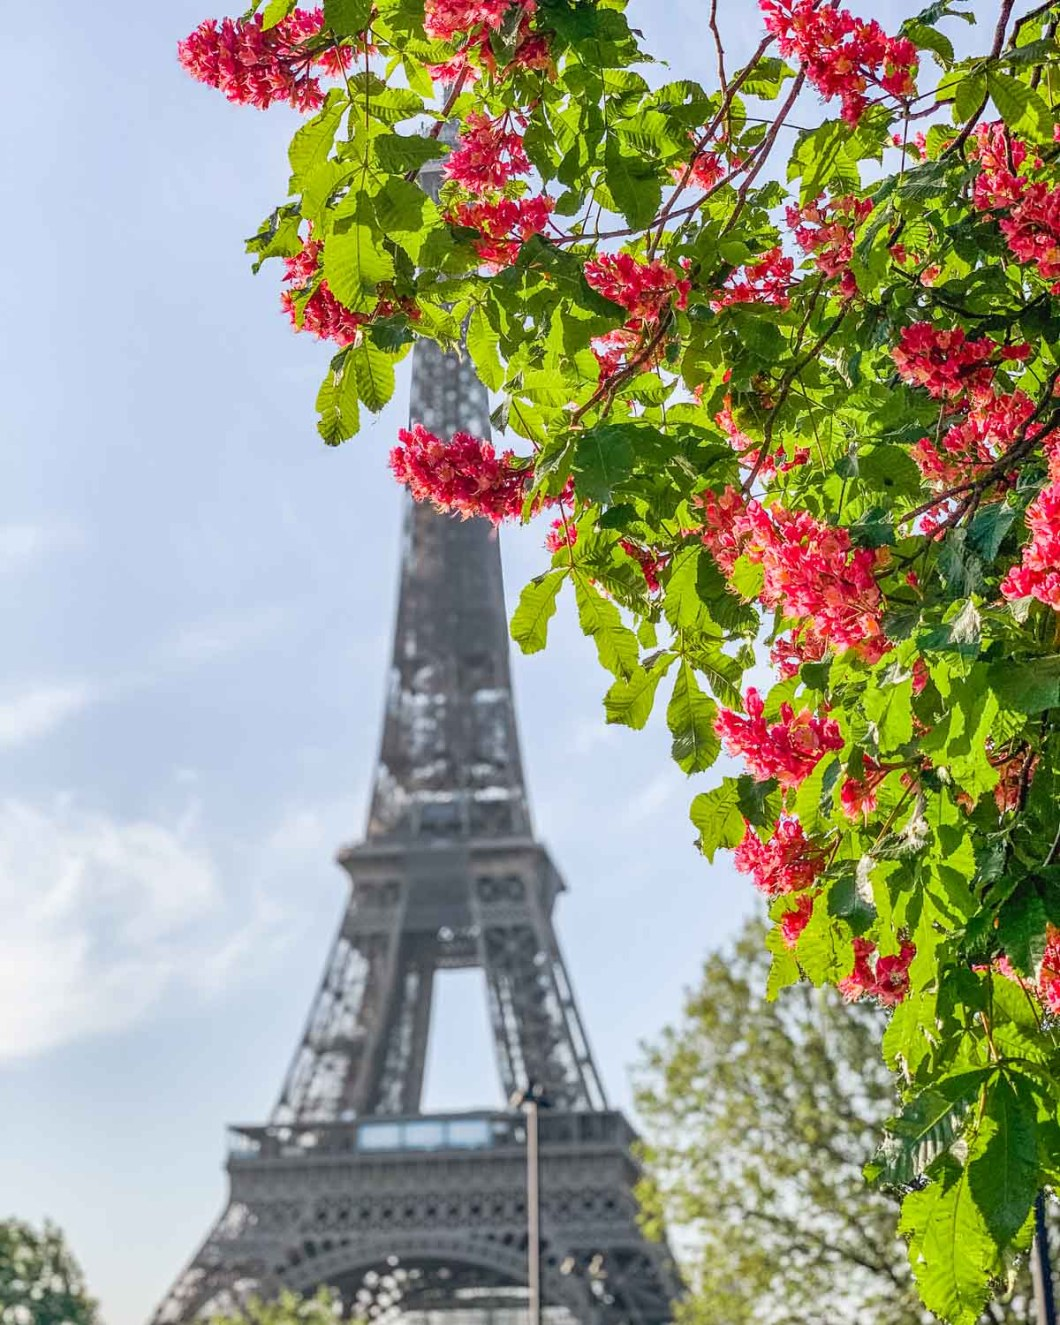 Chestnut trees in bloom at the Eiffel Tower in the Trocadero gardens - Spring in Paris